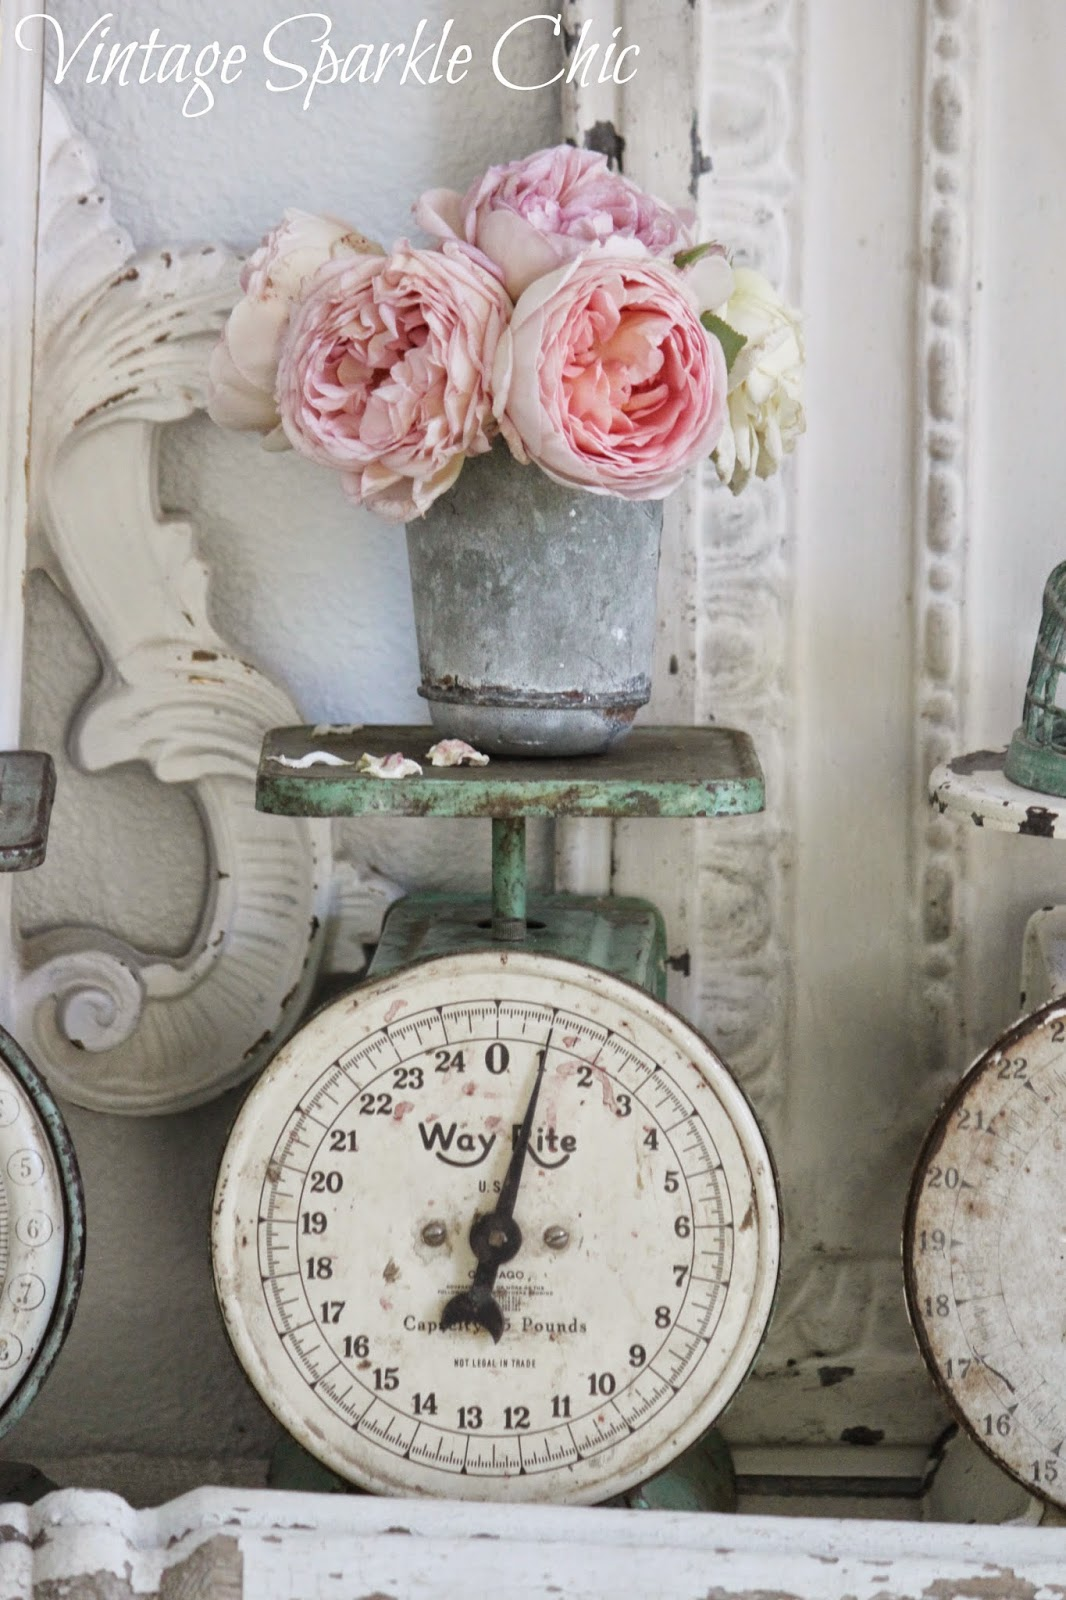 Vintage Sparkle Chic Story Flower Shabby Rose 1 Summers End 2014 04